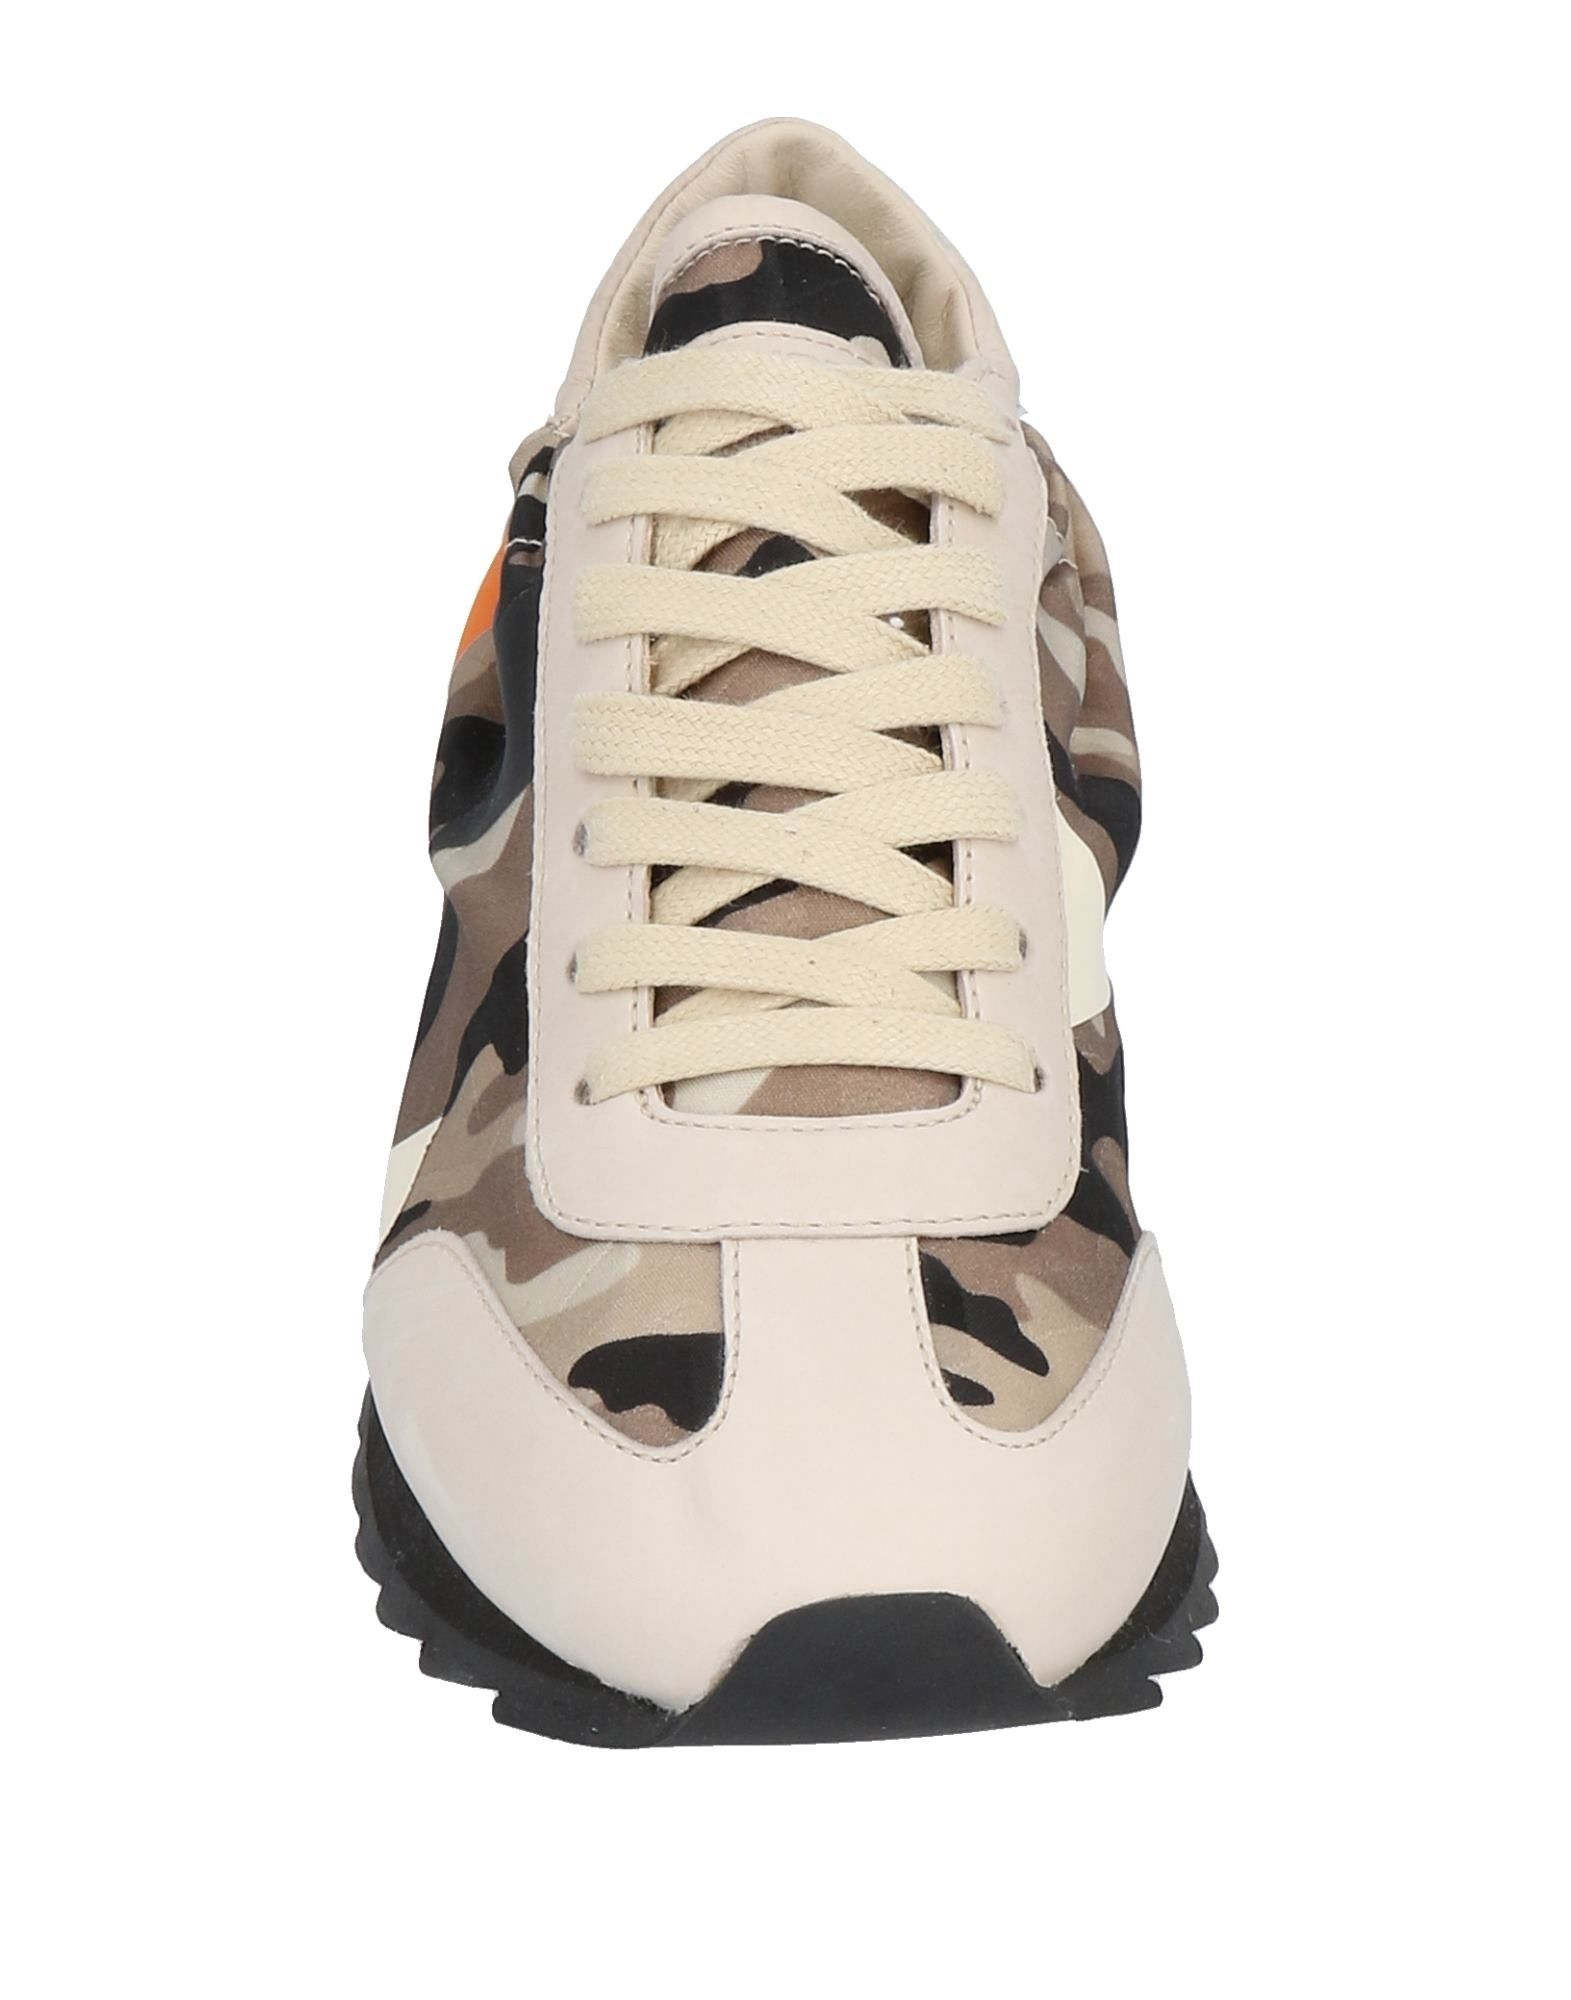 Stilvolle billige Schuhe Damen Philippe Model Sneakers Damen Schuhe  11488040LA a2bea2